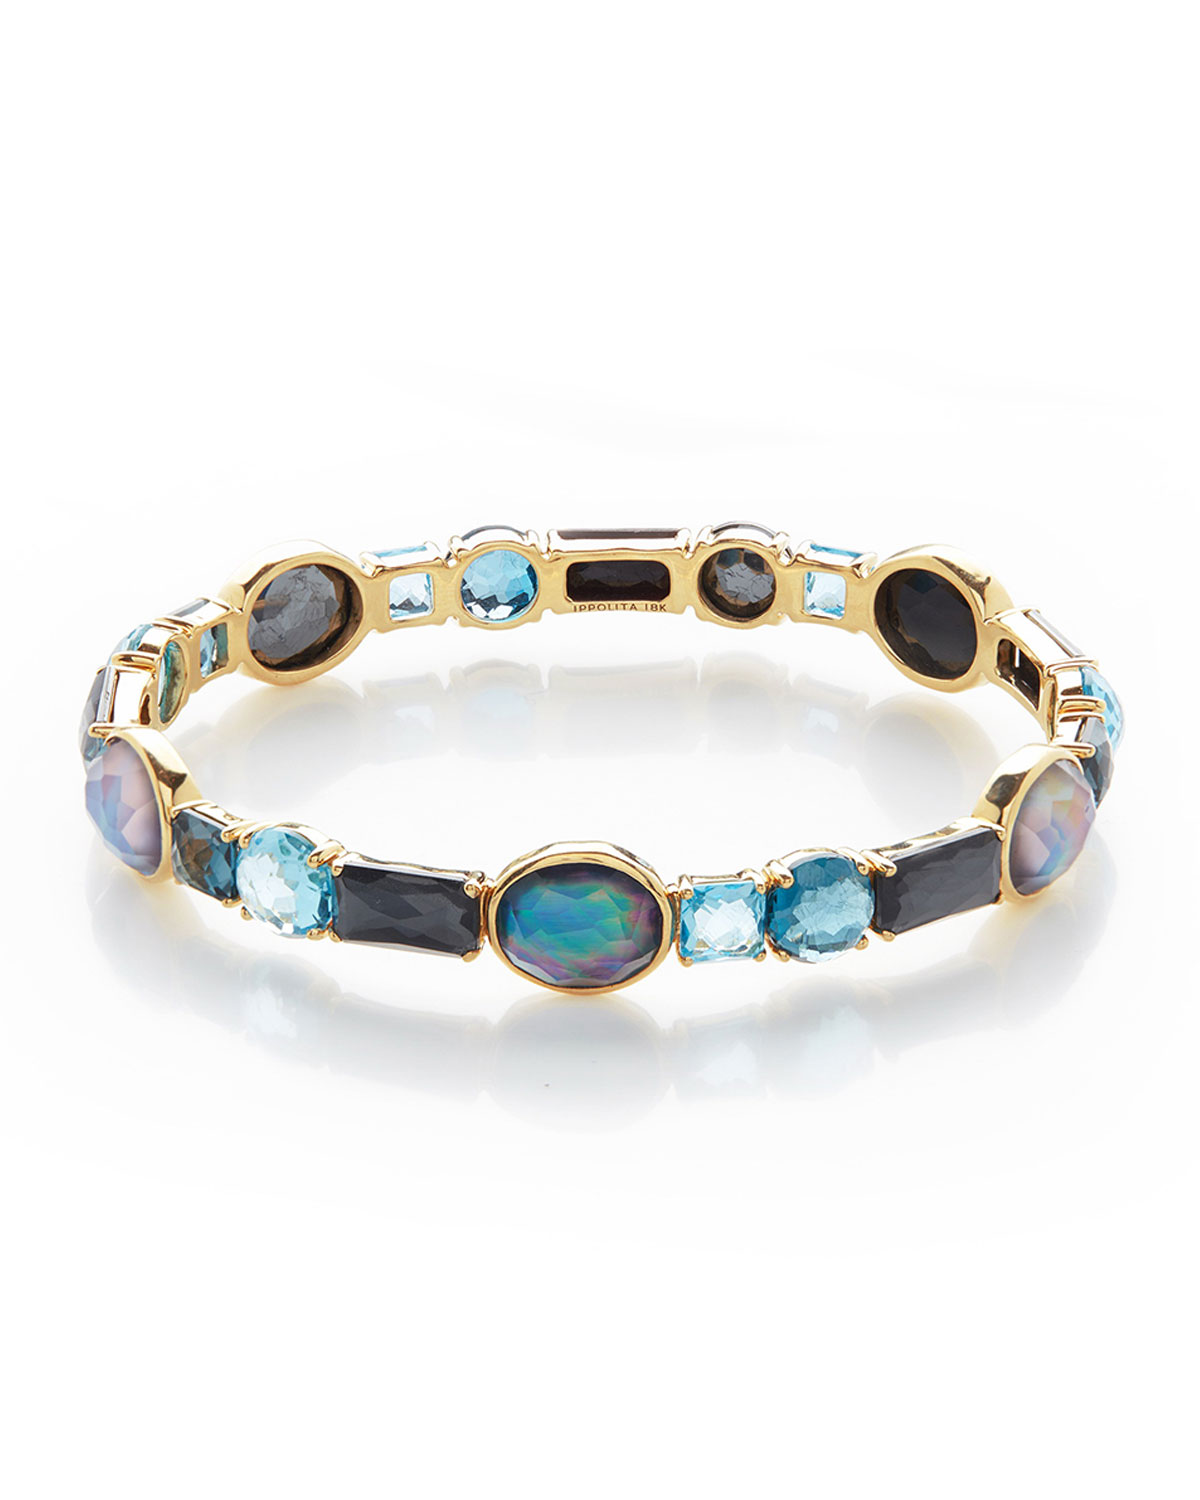 Ippolita 18K Rock Candy Mixed Hinge Bracelet in Pacific